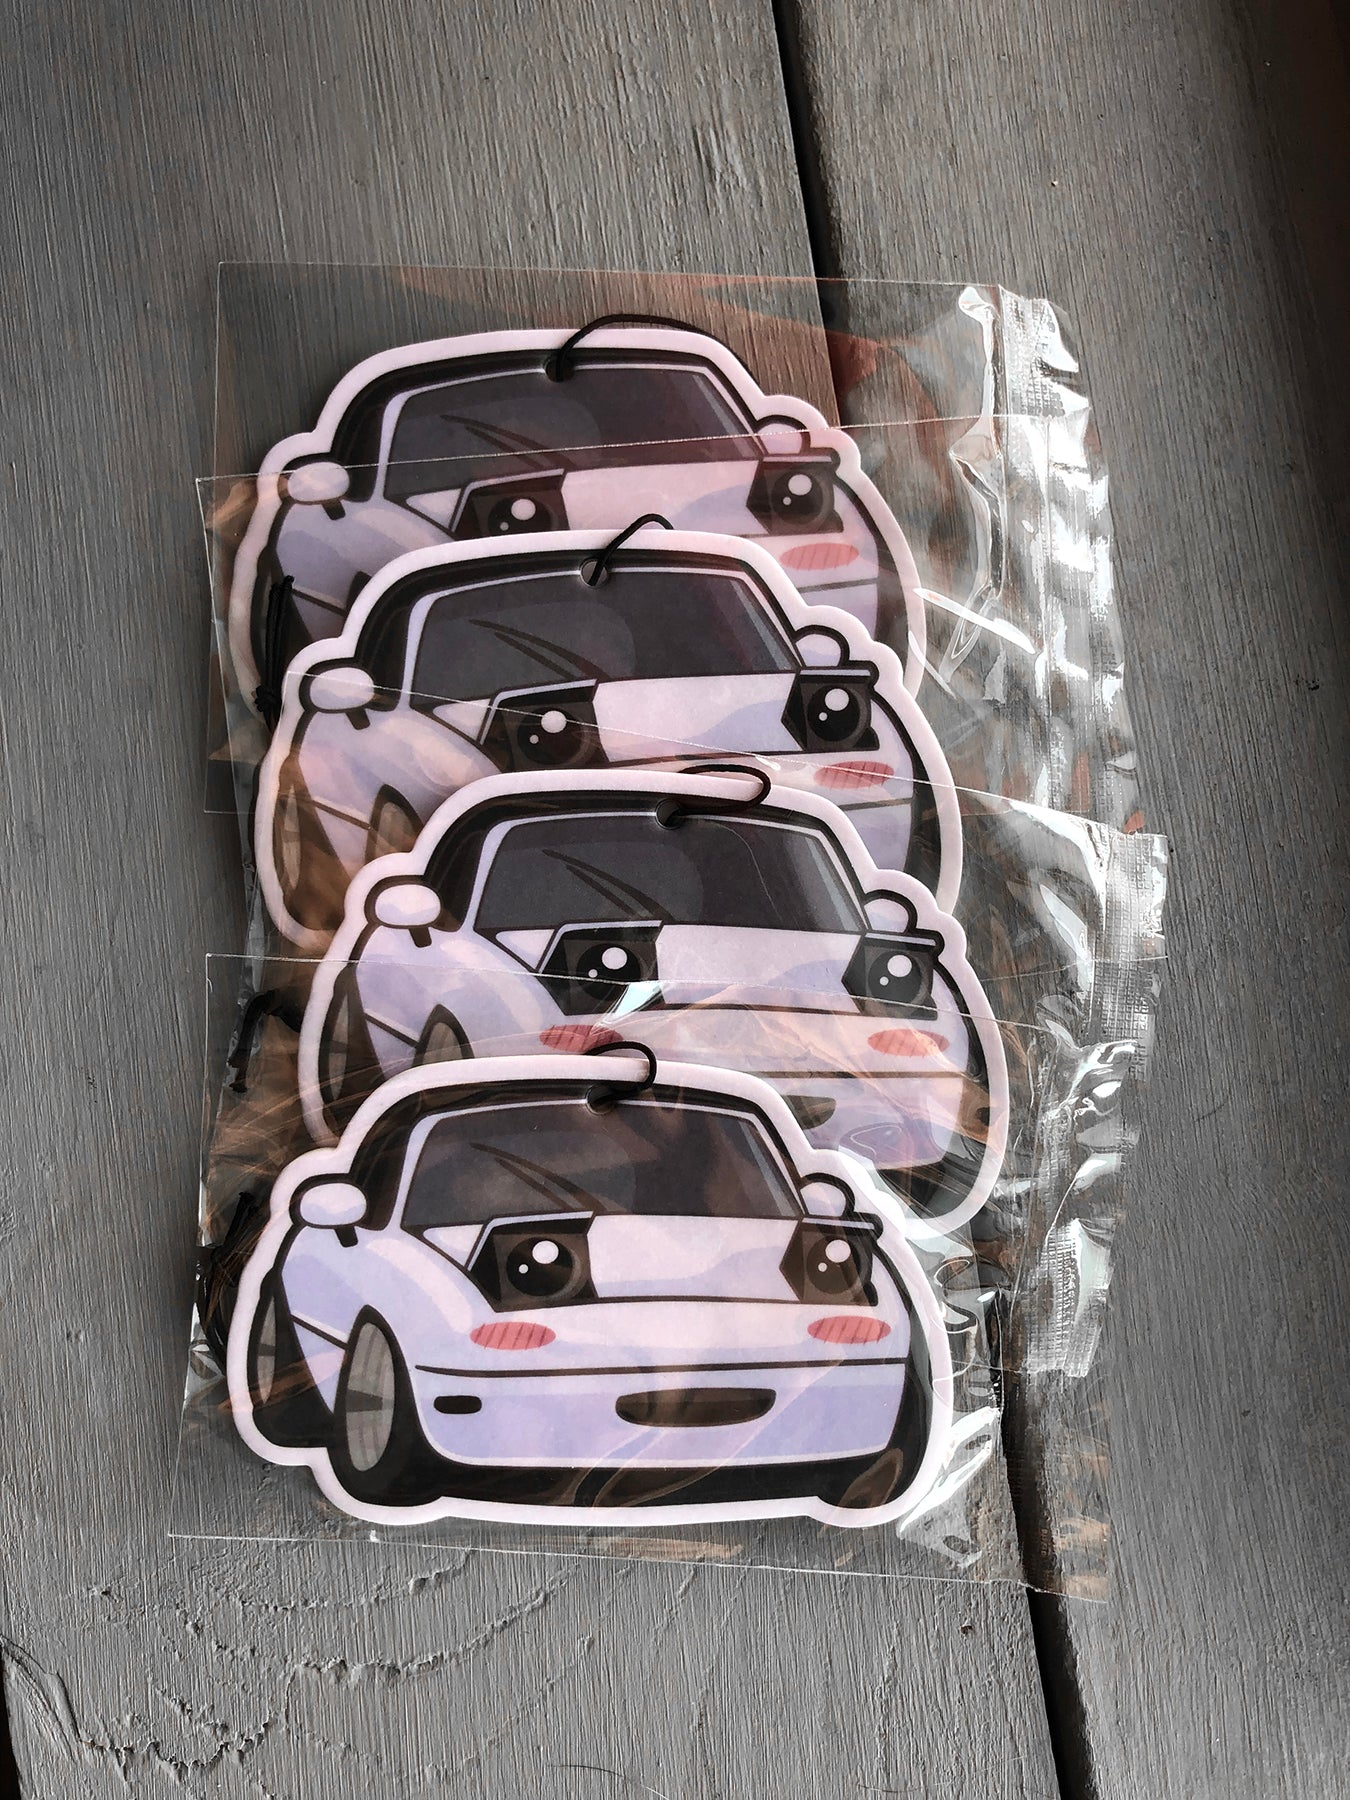 miata bundle pack